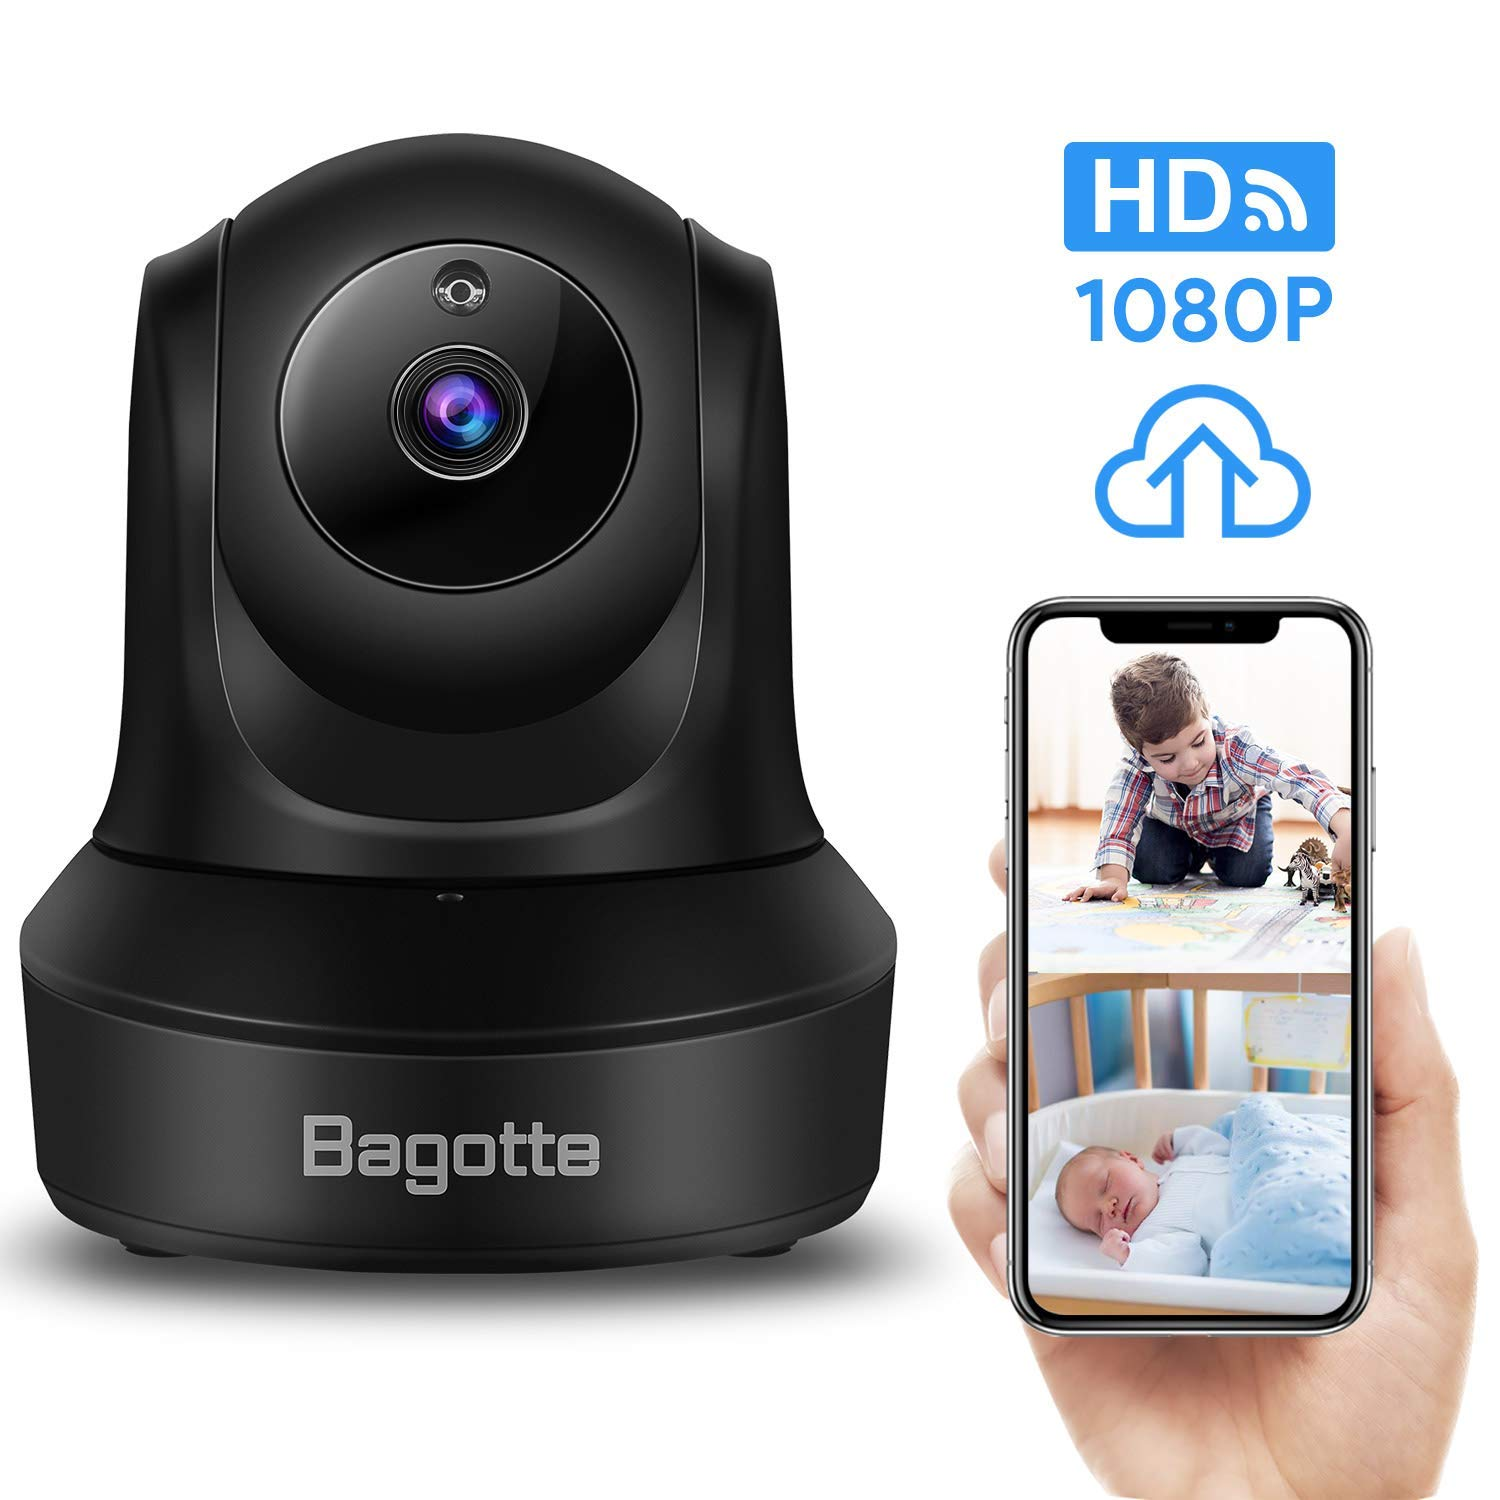 Bagotte Full HD 1080P WiFi Home Security Camera, Wireless IP Indoor Surveillance System Pan/Tilt/Zoom Audio Camera, Night Vision, Motion Detection, Remote Baby Monitor iOS - Cloud Storage by Bagotte